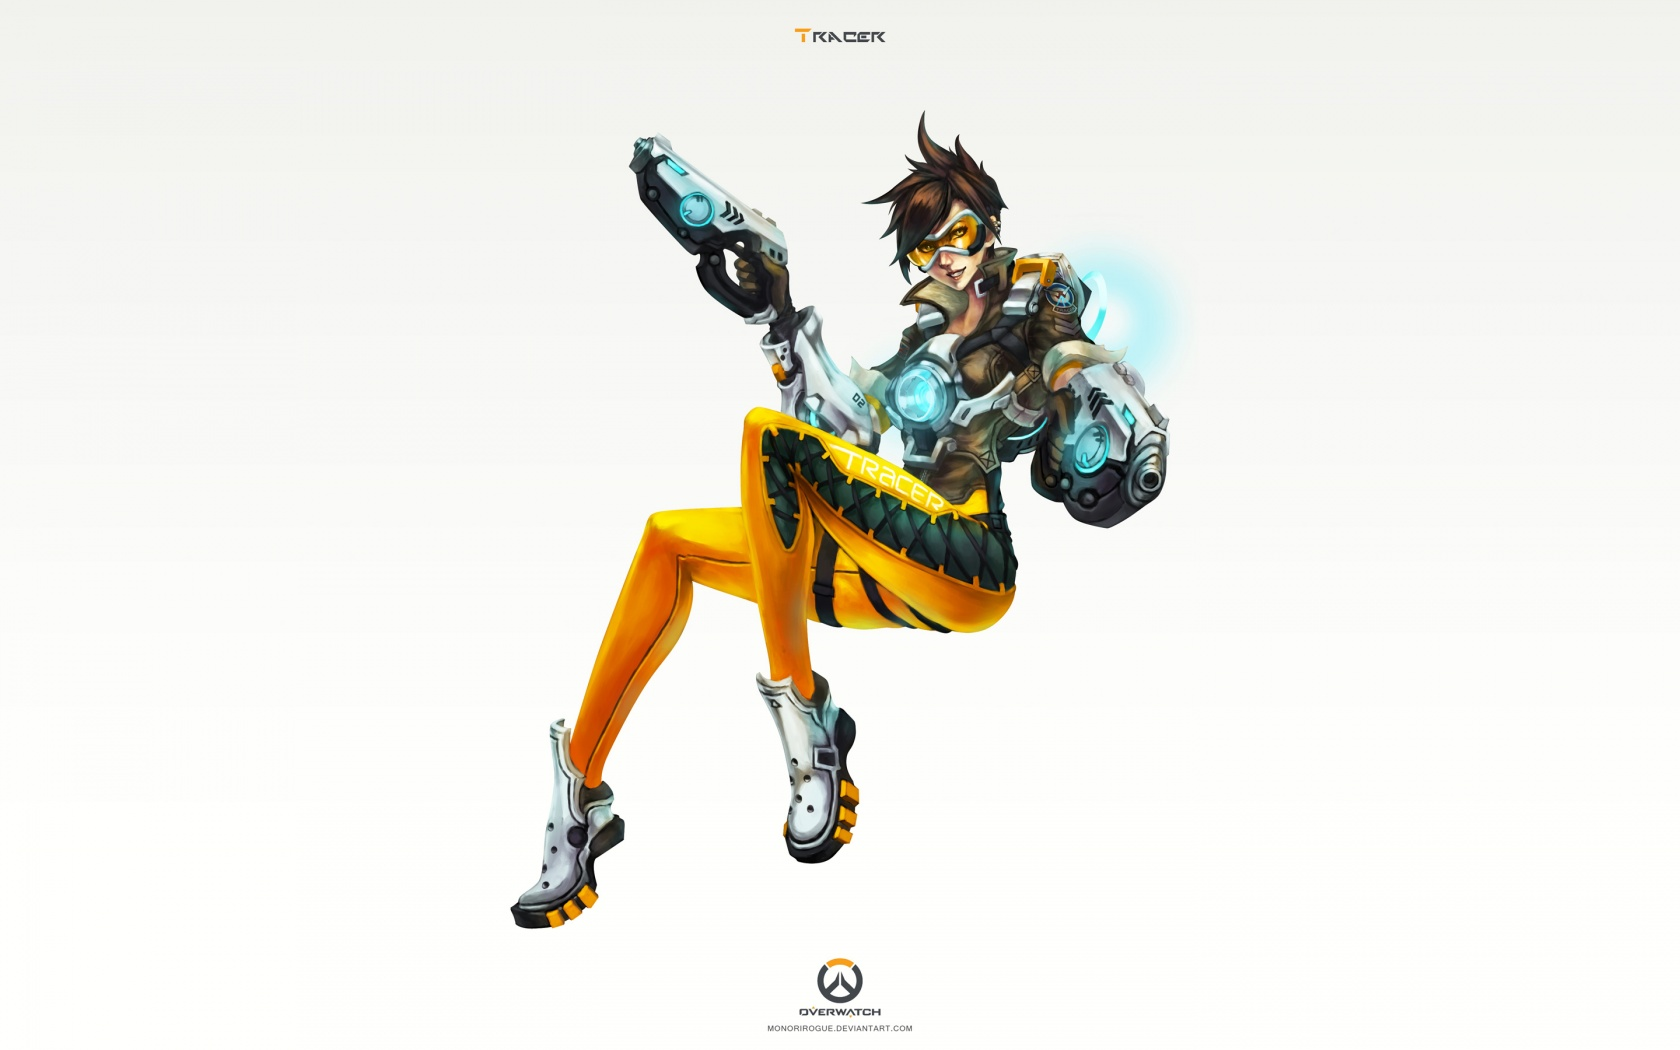 Tracer Overwatch Art 4K Wallpapers HD Wallpapers 1680x1050